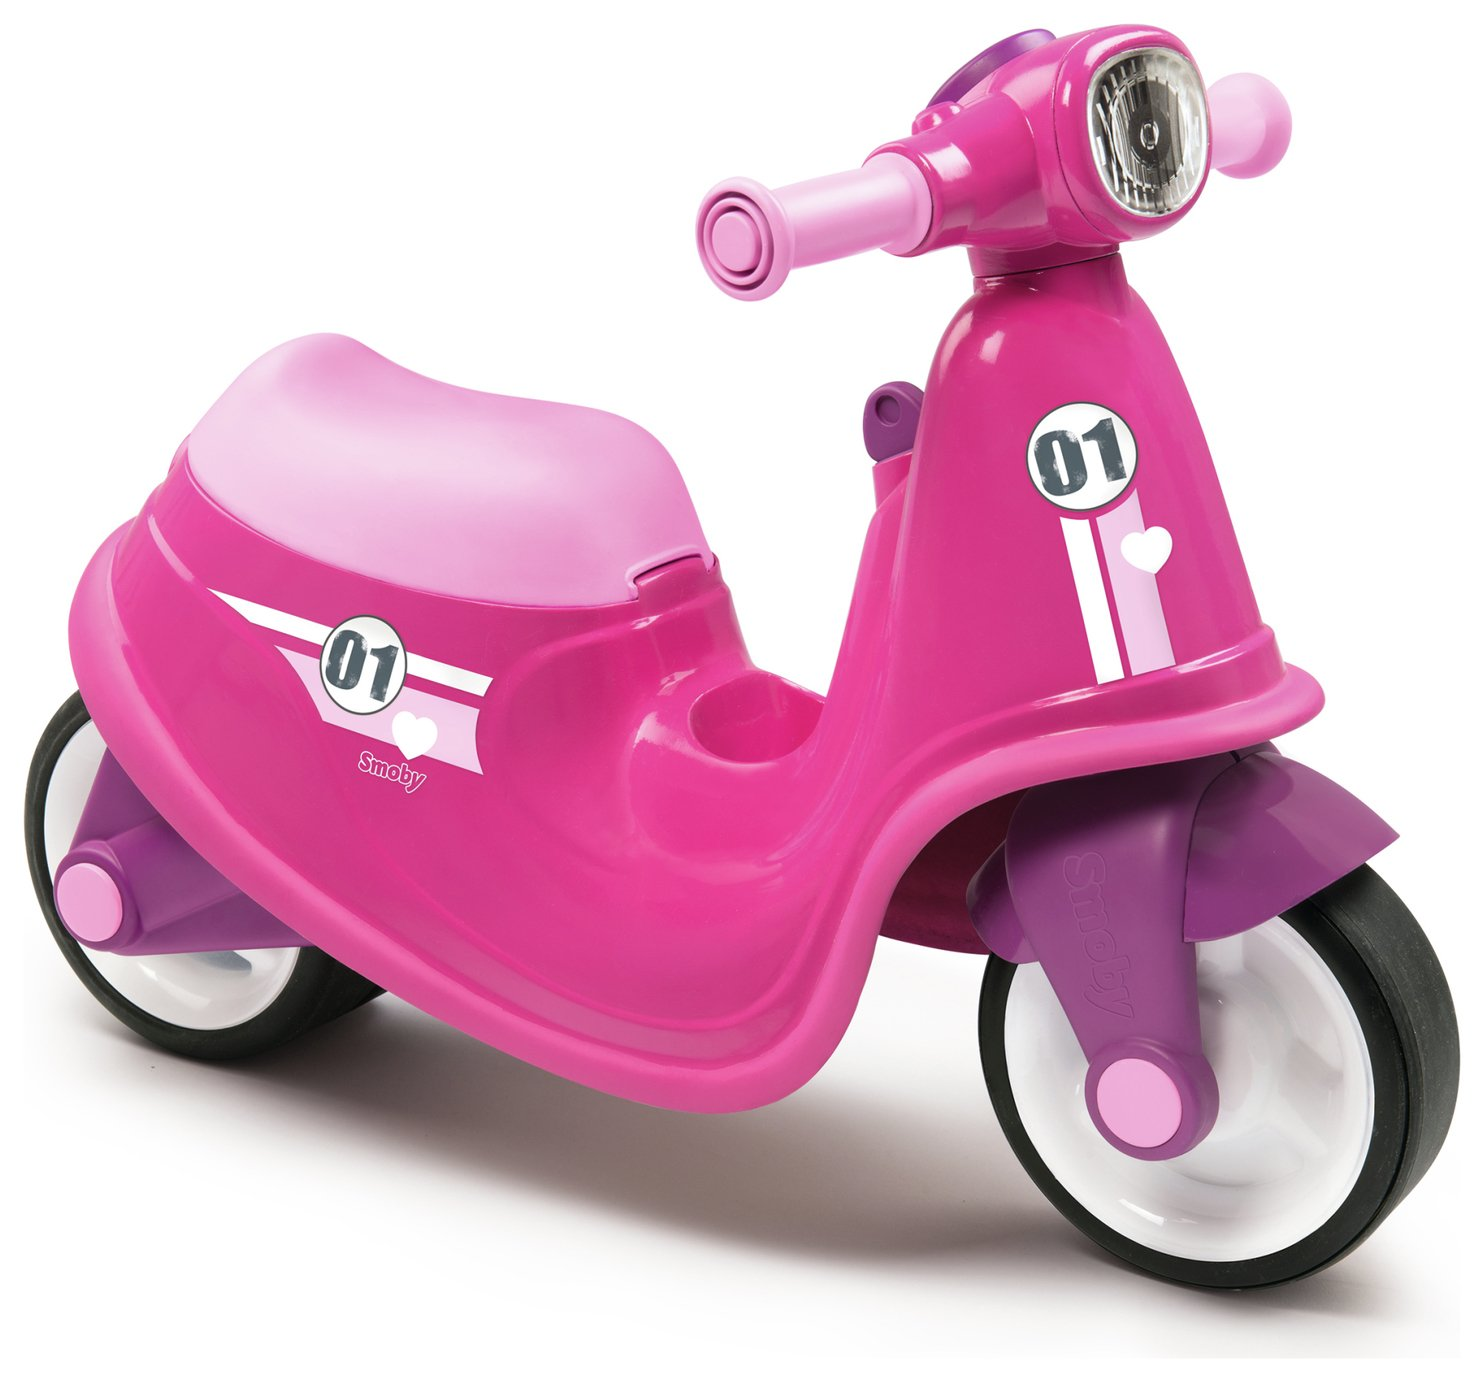 SMOBY Scooter - Pink